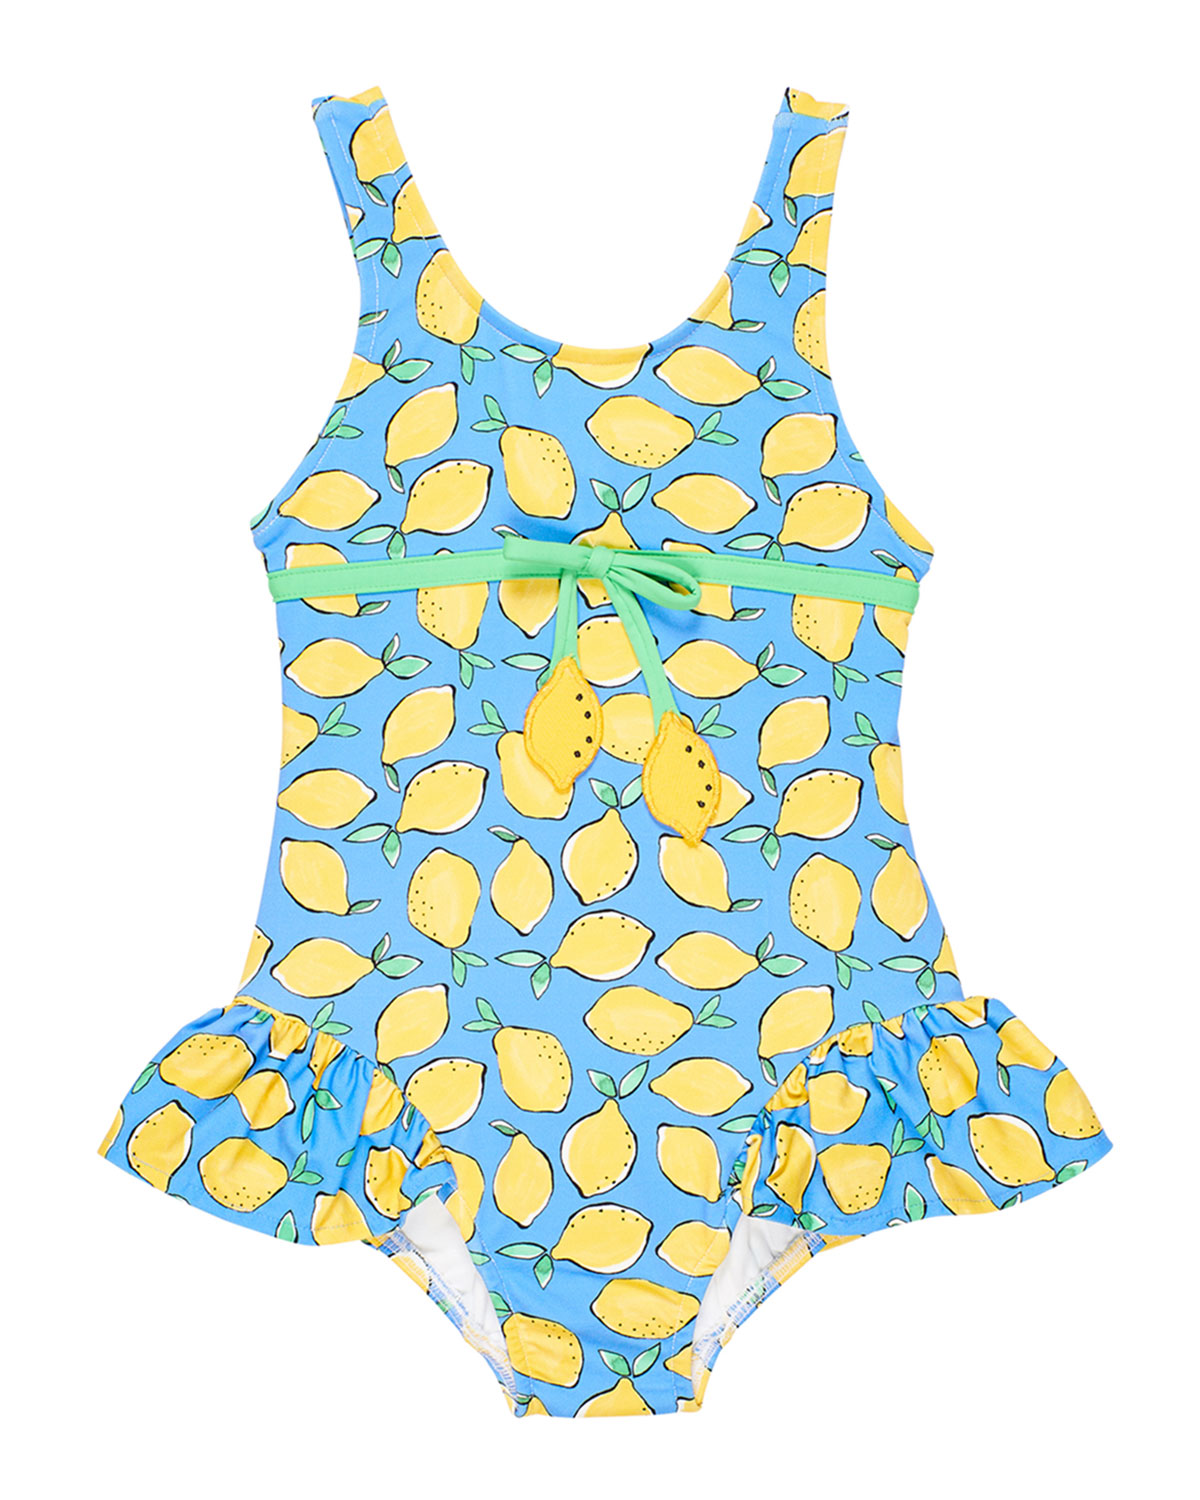 Florence Eiseman Girl's Lemon-Print Ruffle Skirt One-Piece Swimsuit, Size 6-24 Months